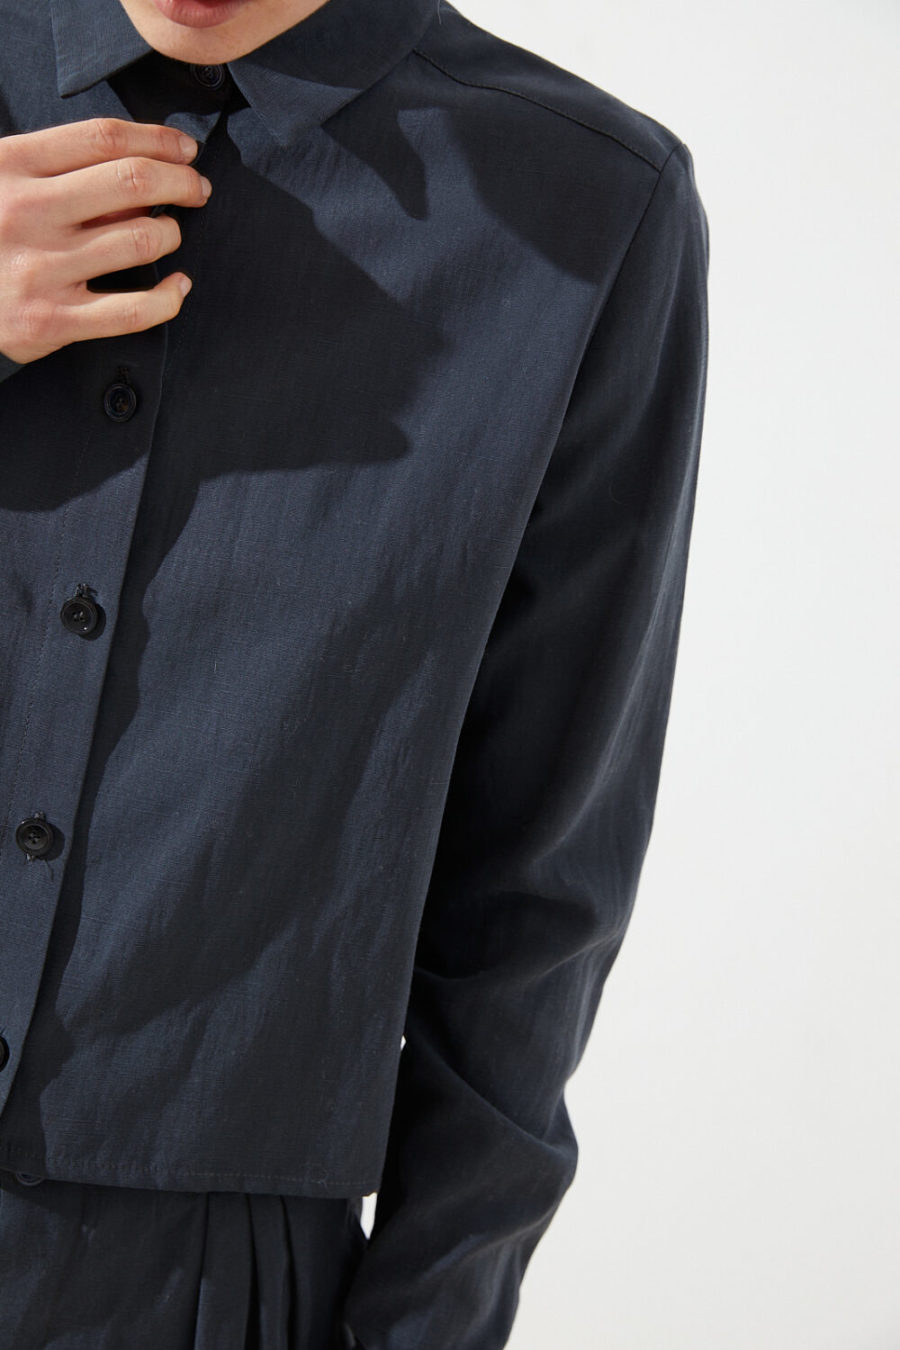 CUS - Segvi Tencel-Linen Shirt, Blue Nights